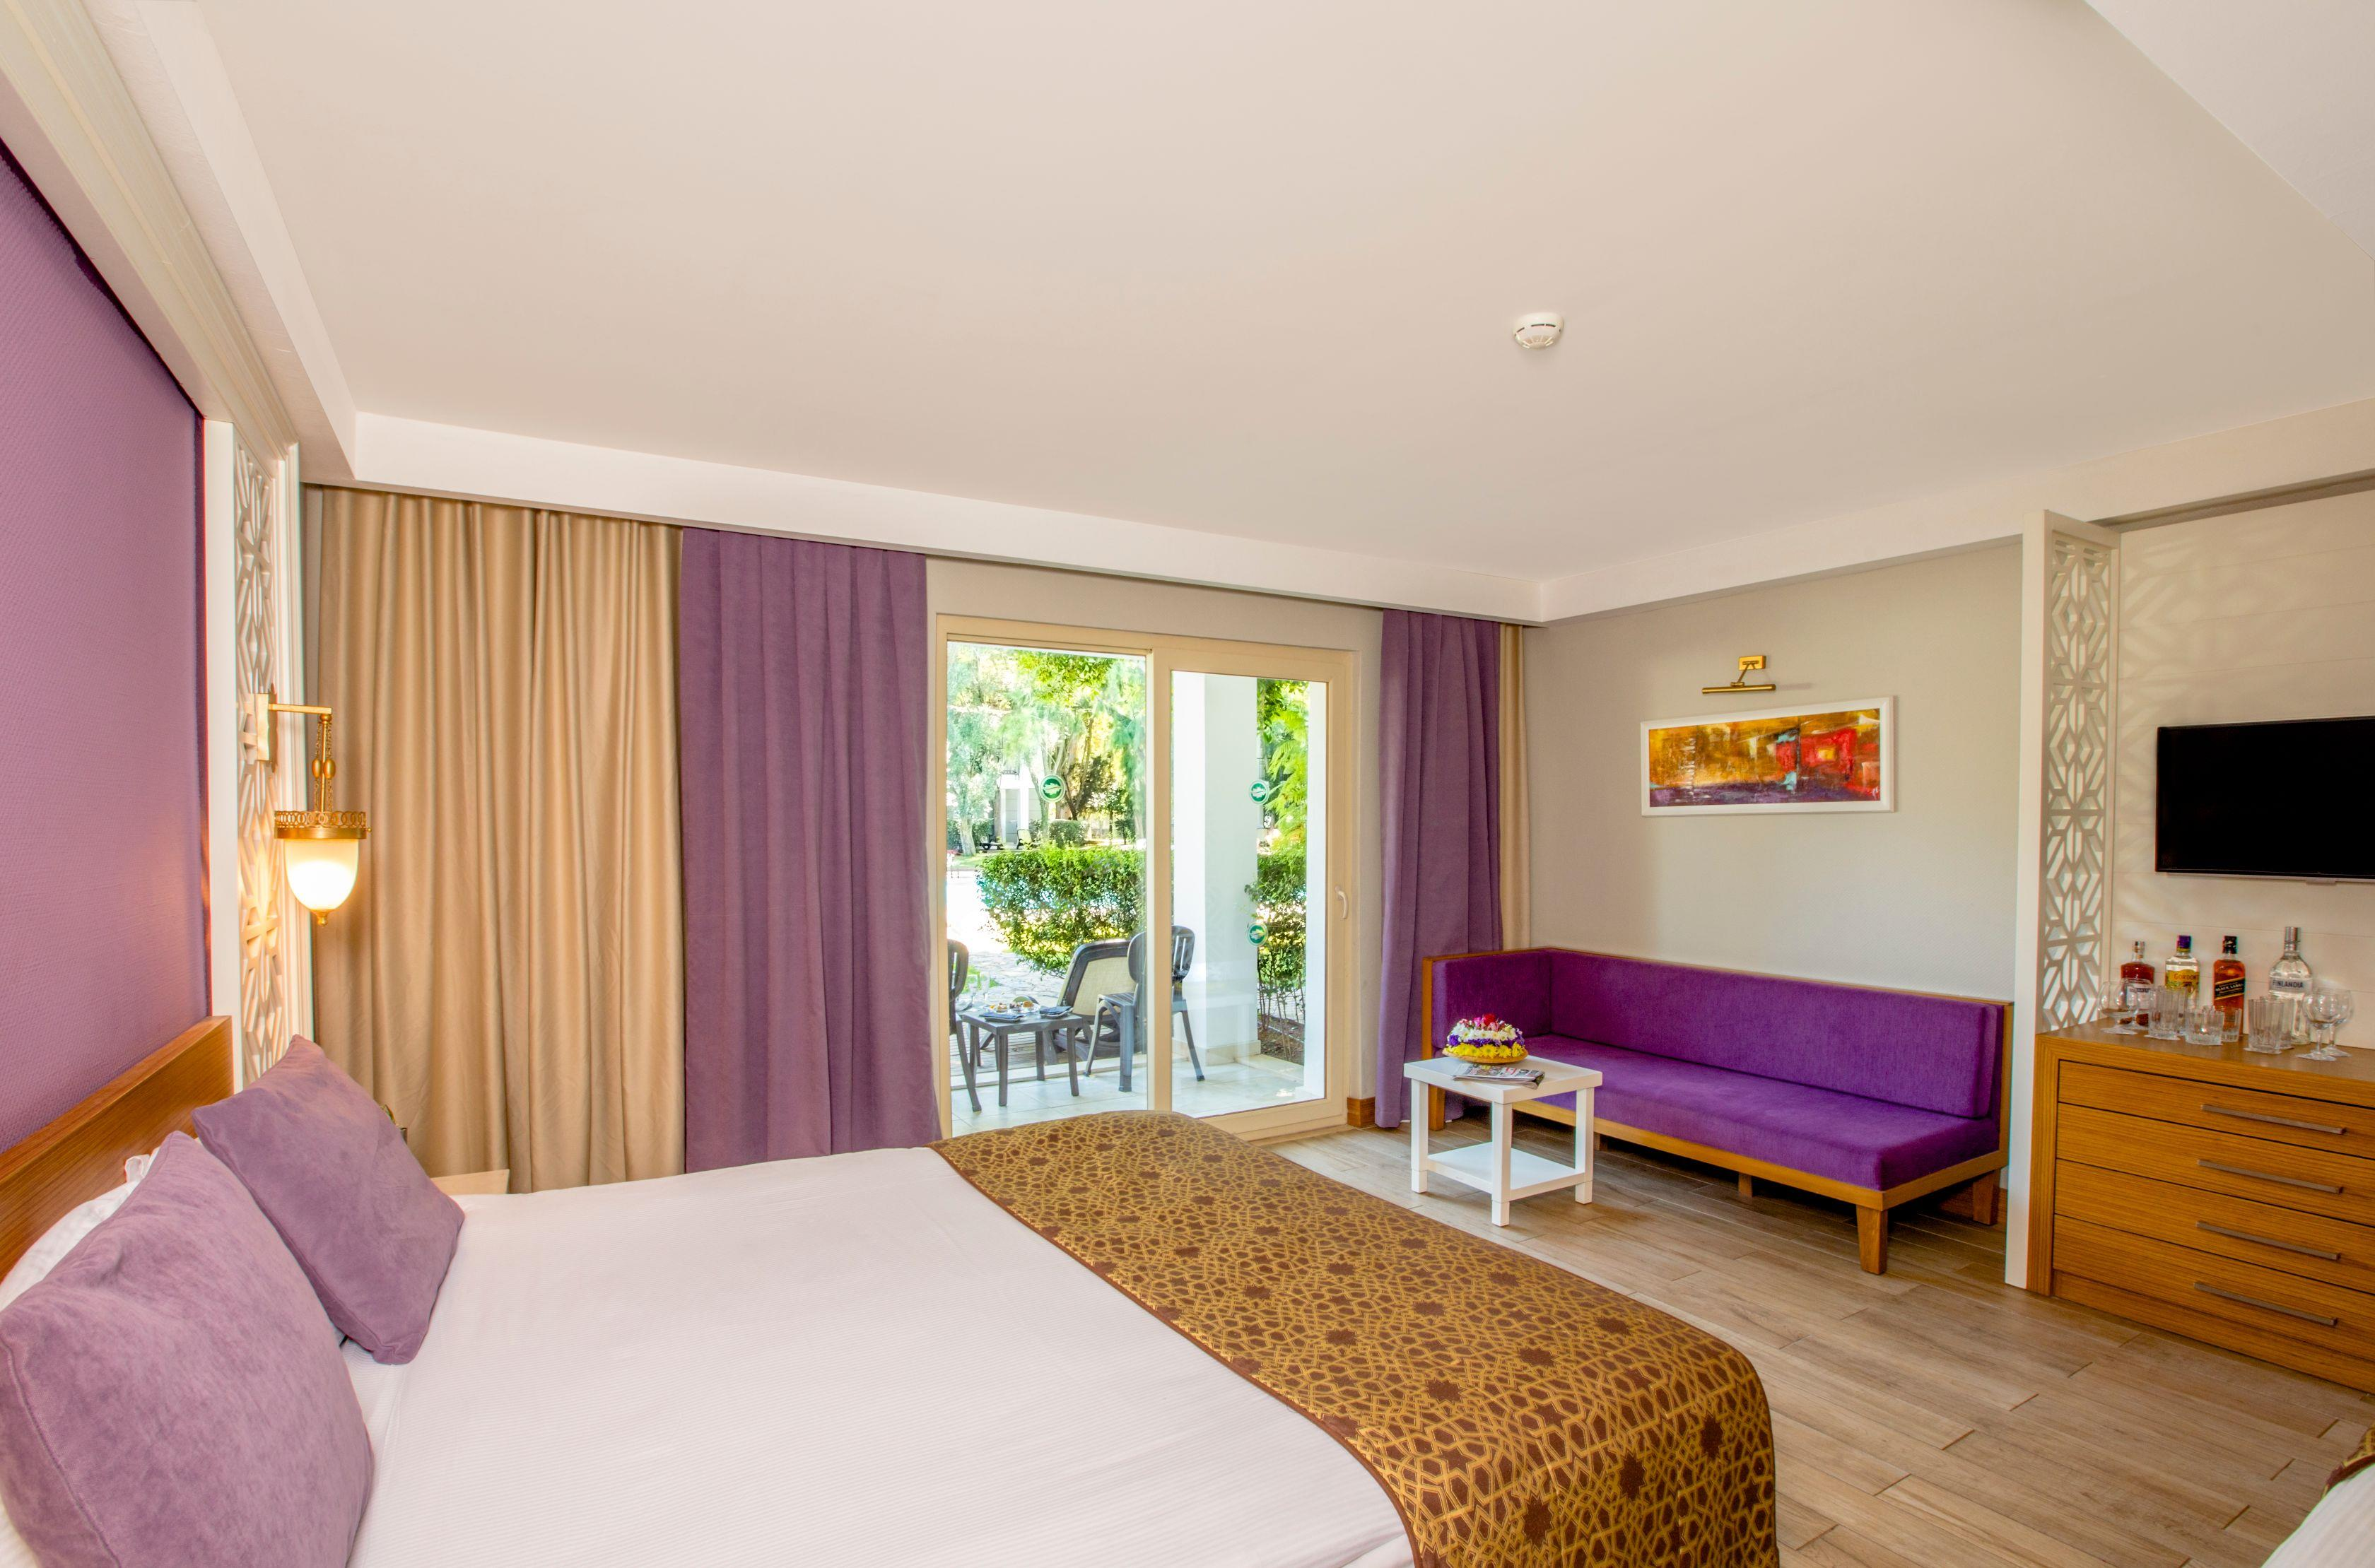 http://www.orextravel.sk/OREX/hotelphotos/sherwood-exclusive-kemer-general-0065.jpg